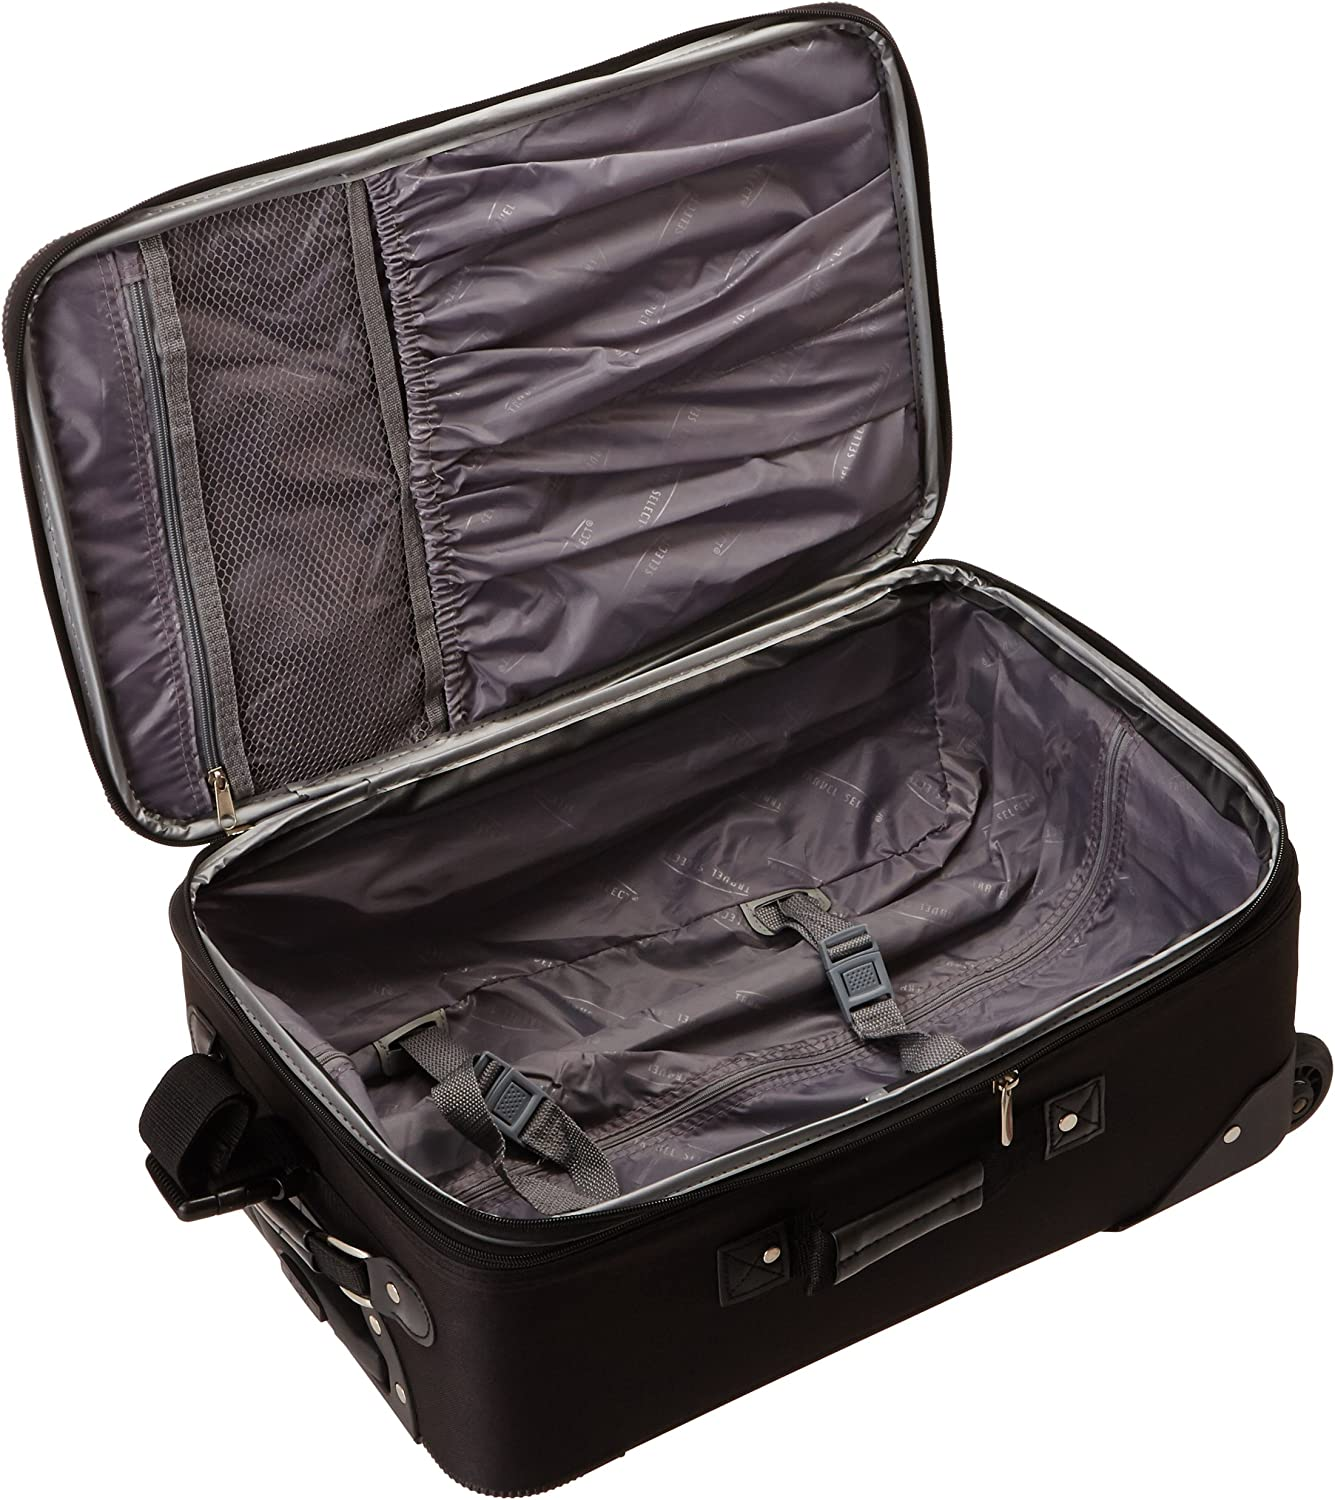 Travel Select Amsterdam Expandable Rolling Upright Luggage Set 2-Piece Navy